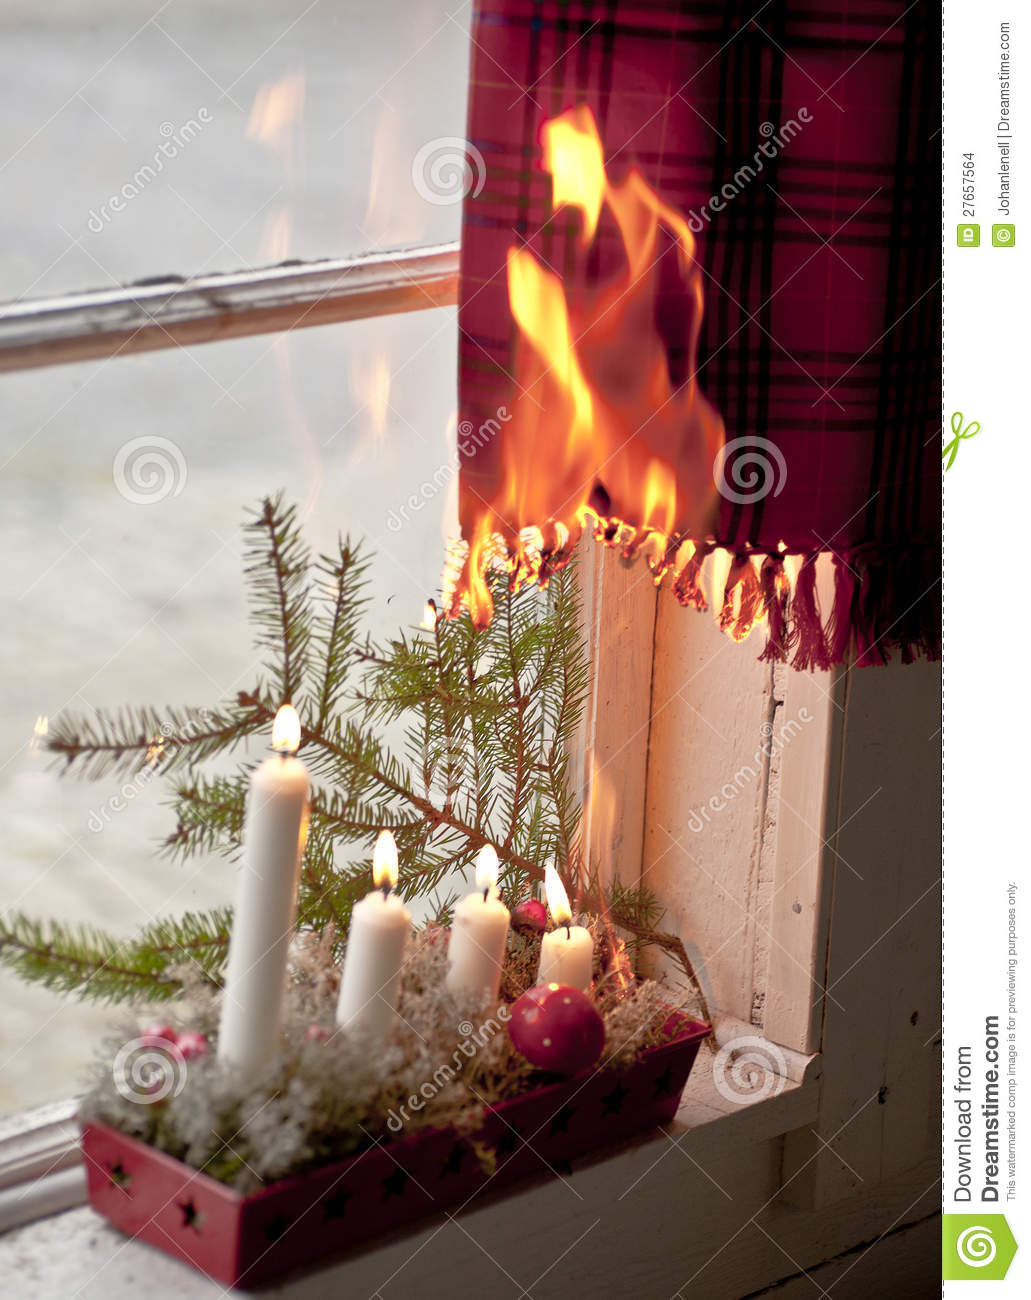 More similar stock images of ` Christmas candles starting a fire `